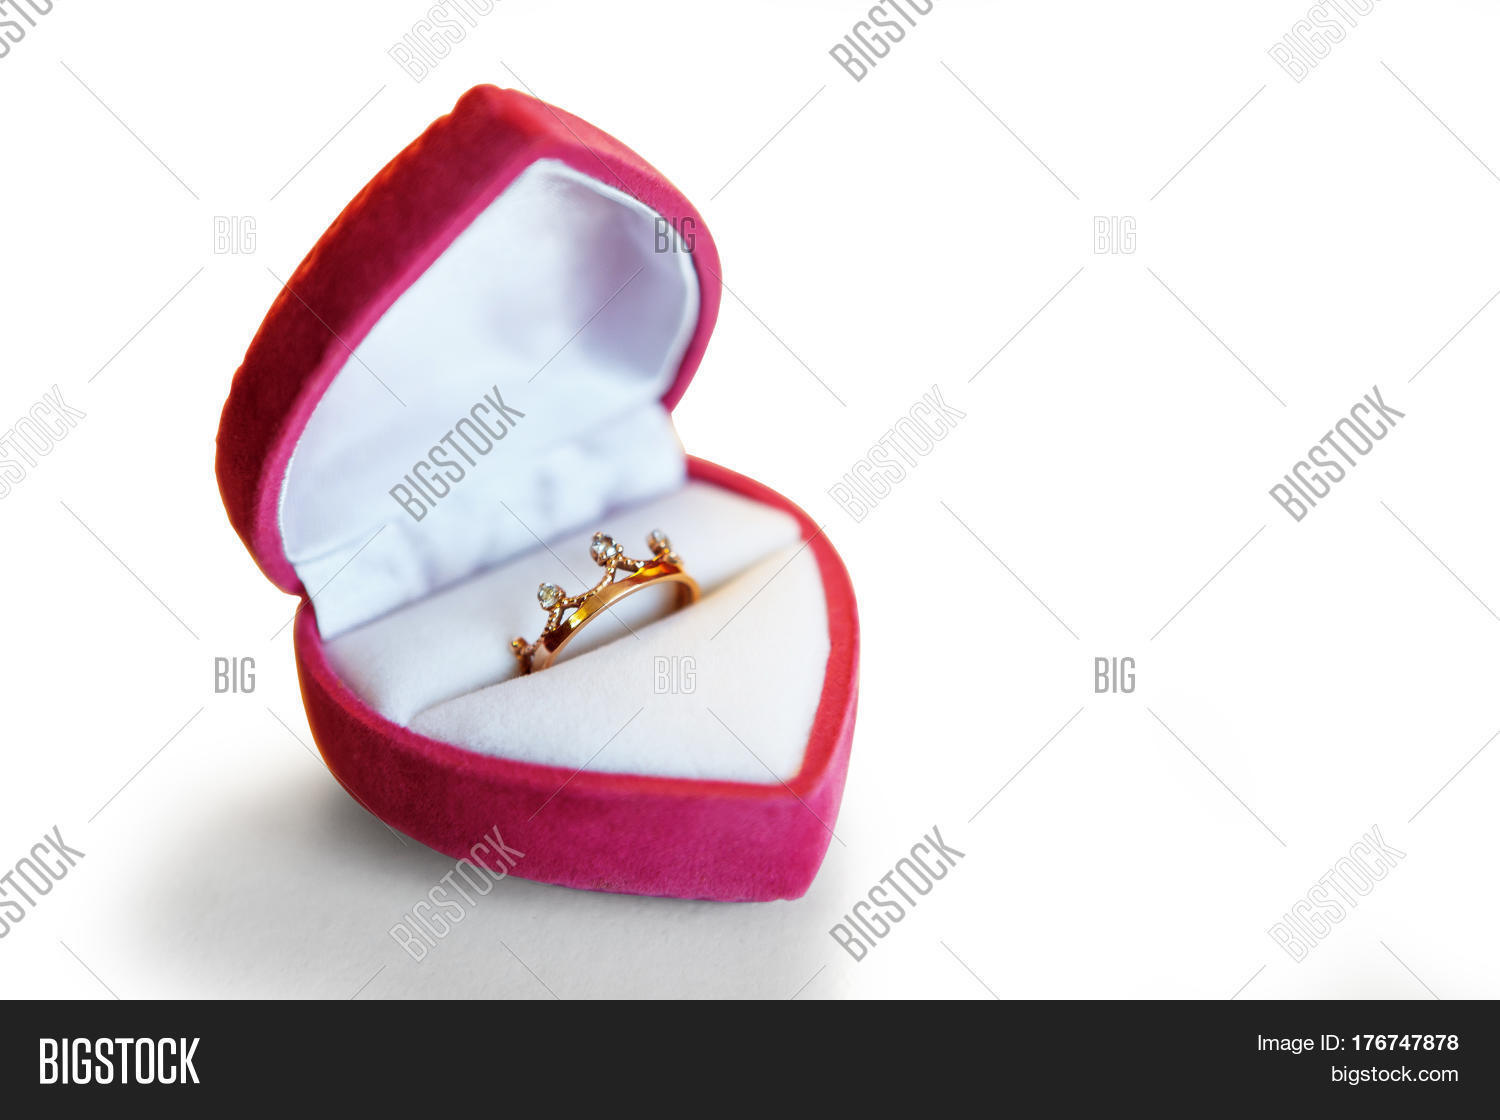 Engagement ring box shaped heart on image photo bigstock for Heart shaped engagement ring box